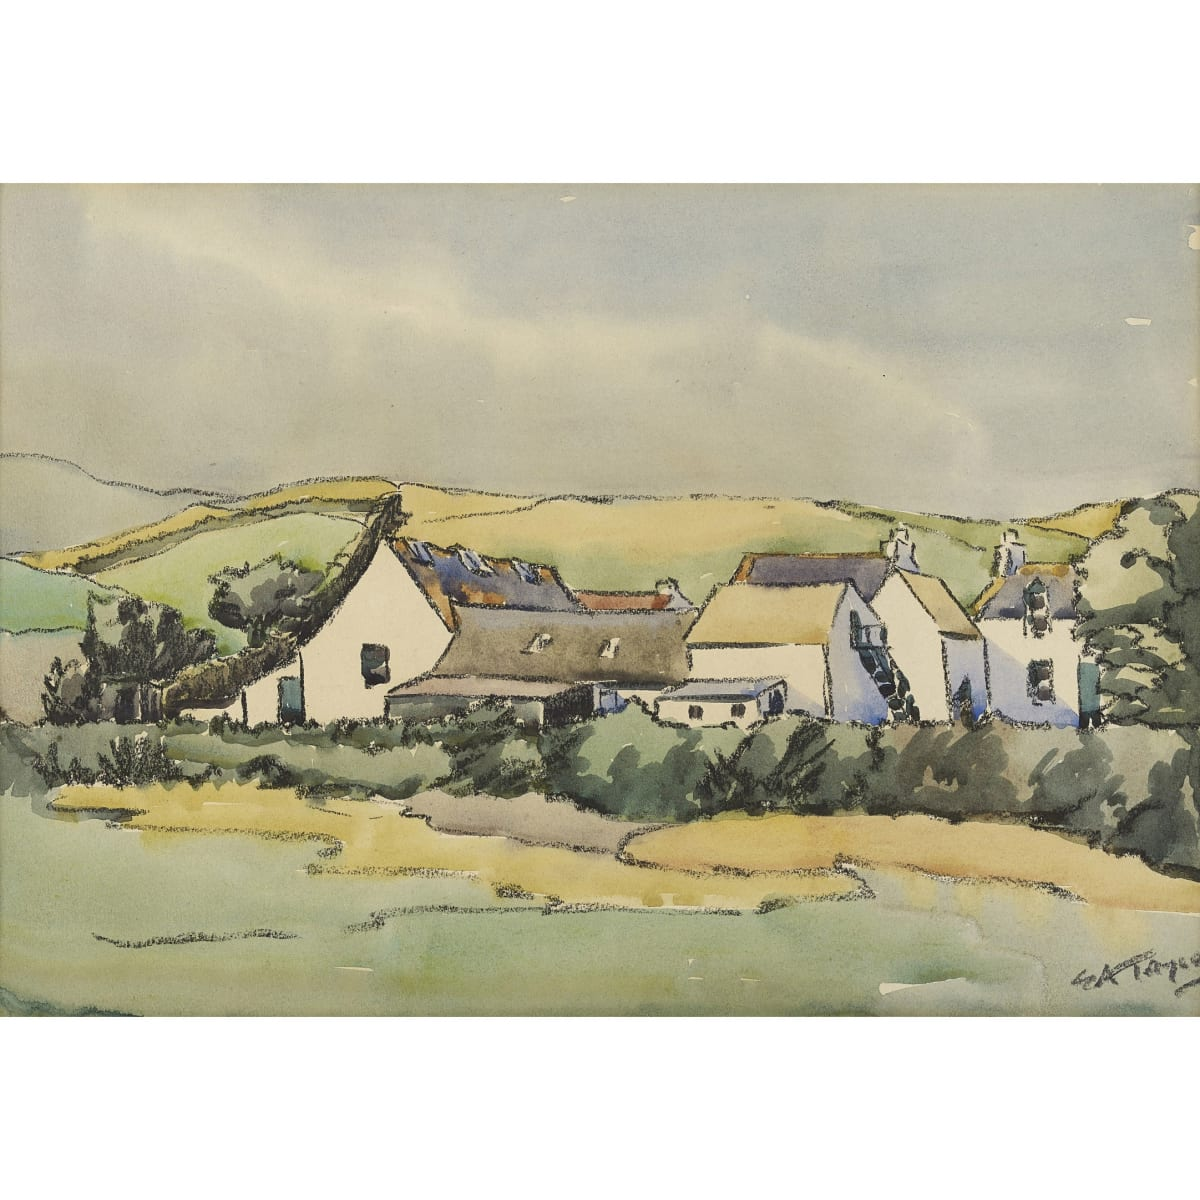 Ernest Archibald Taylor Kirkcudbright Cottages signed ink, charcoal and watercolour 9 x 13 1/4 inches